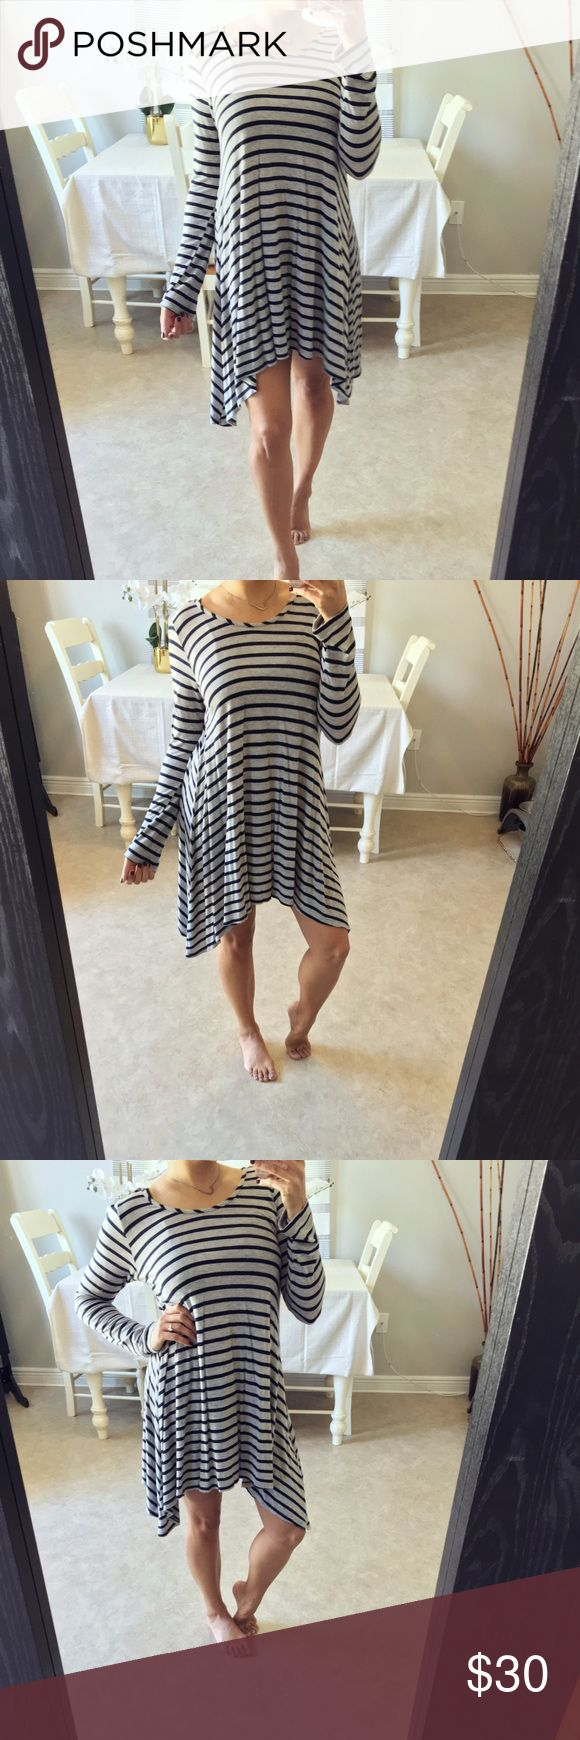 Long sleeve flowy dress Super soft and flowy. Light gray and navy blue stripes Dresses Long Sleeve